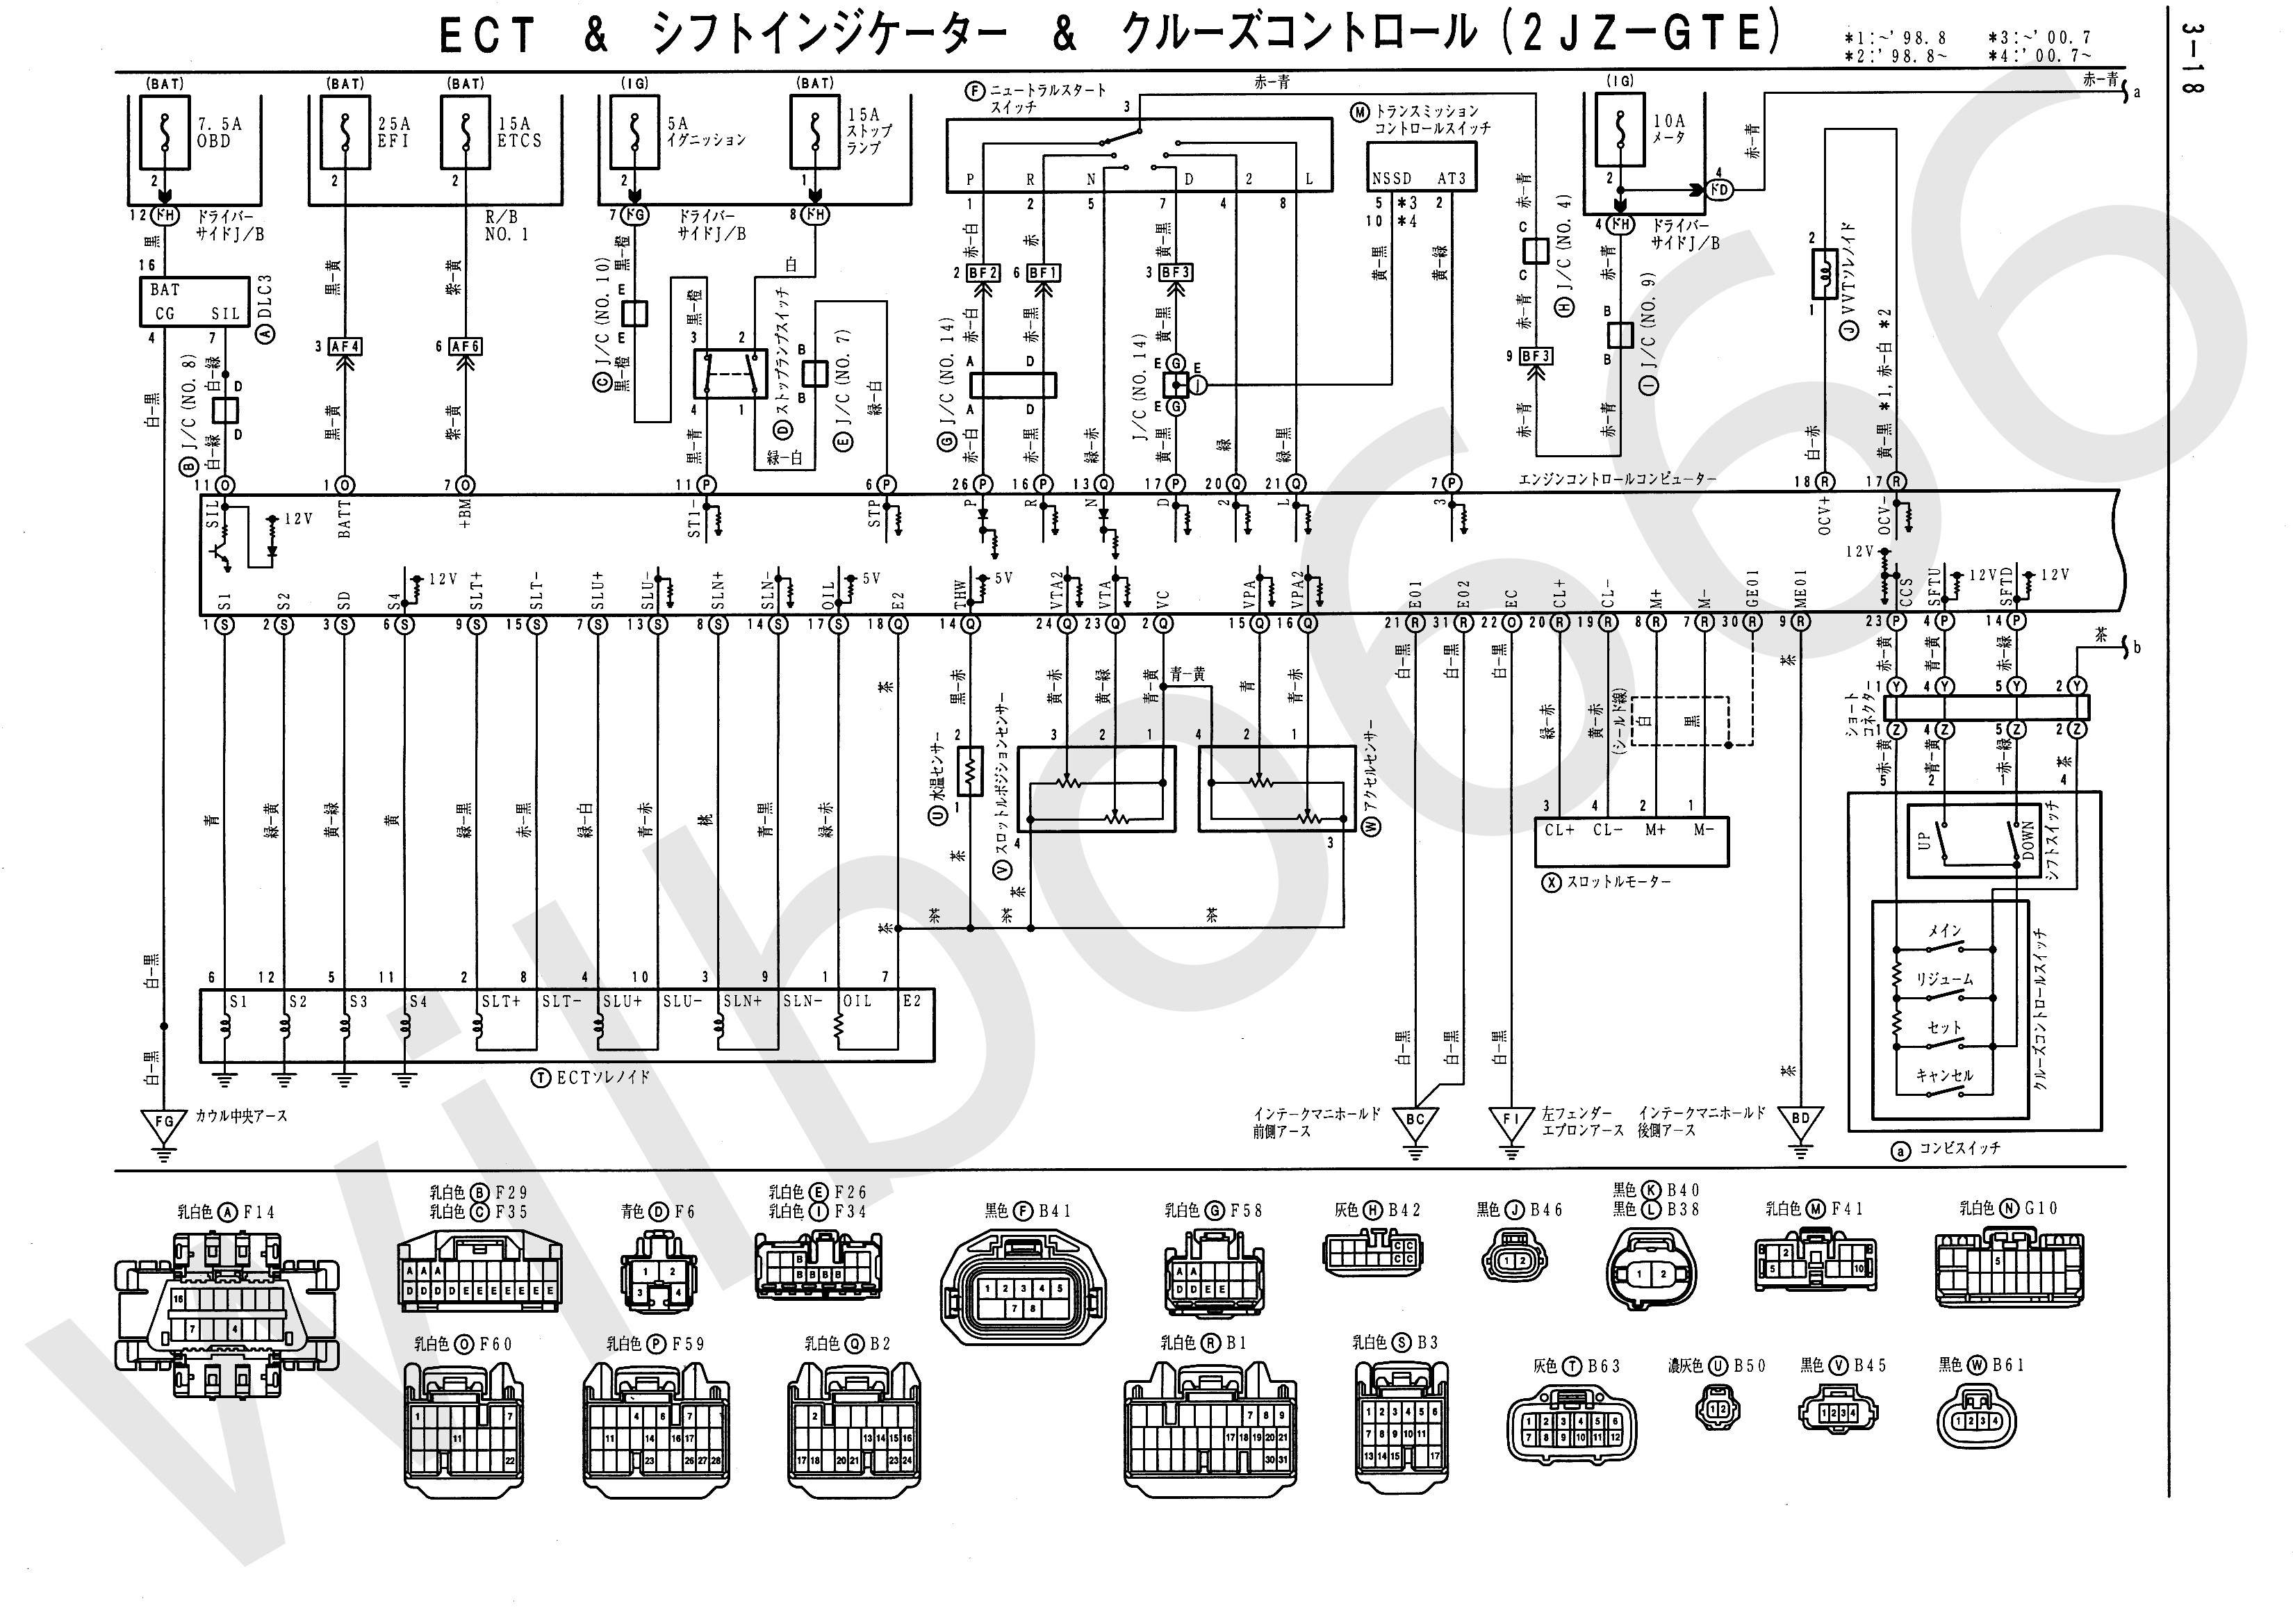 JZS161 Electrical Wiring Diagram 6748505 3 18?resize\=665%2C471 ge sensor wiring diagram ge motor diagrams, ge repair diagrams ge dryer wiring diagram at soozxer.org